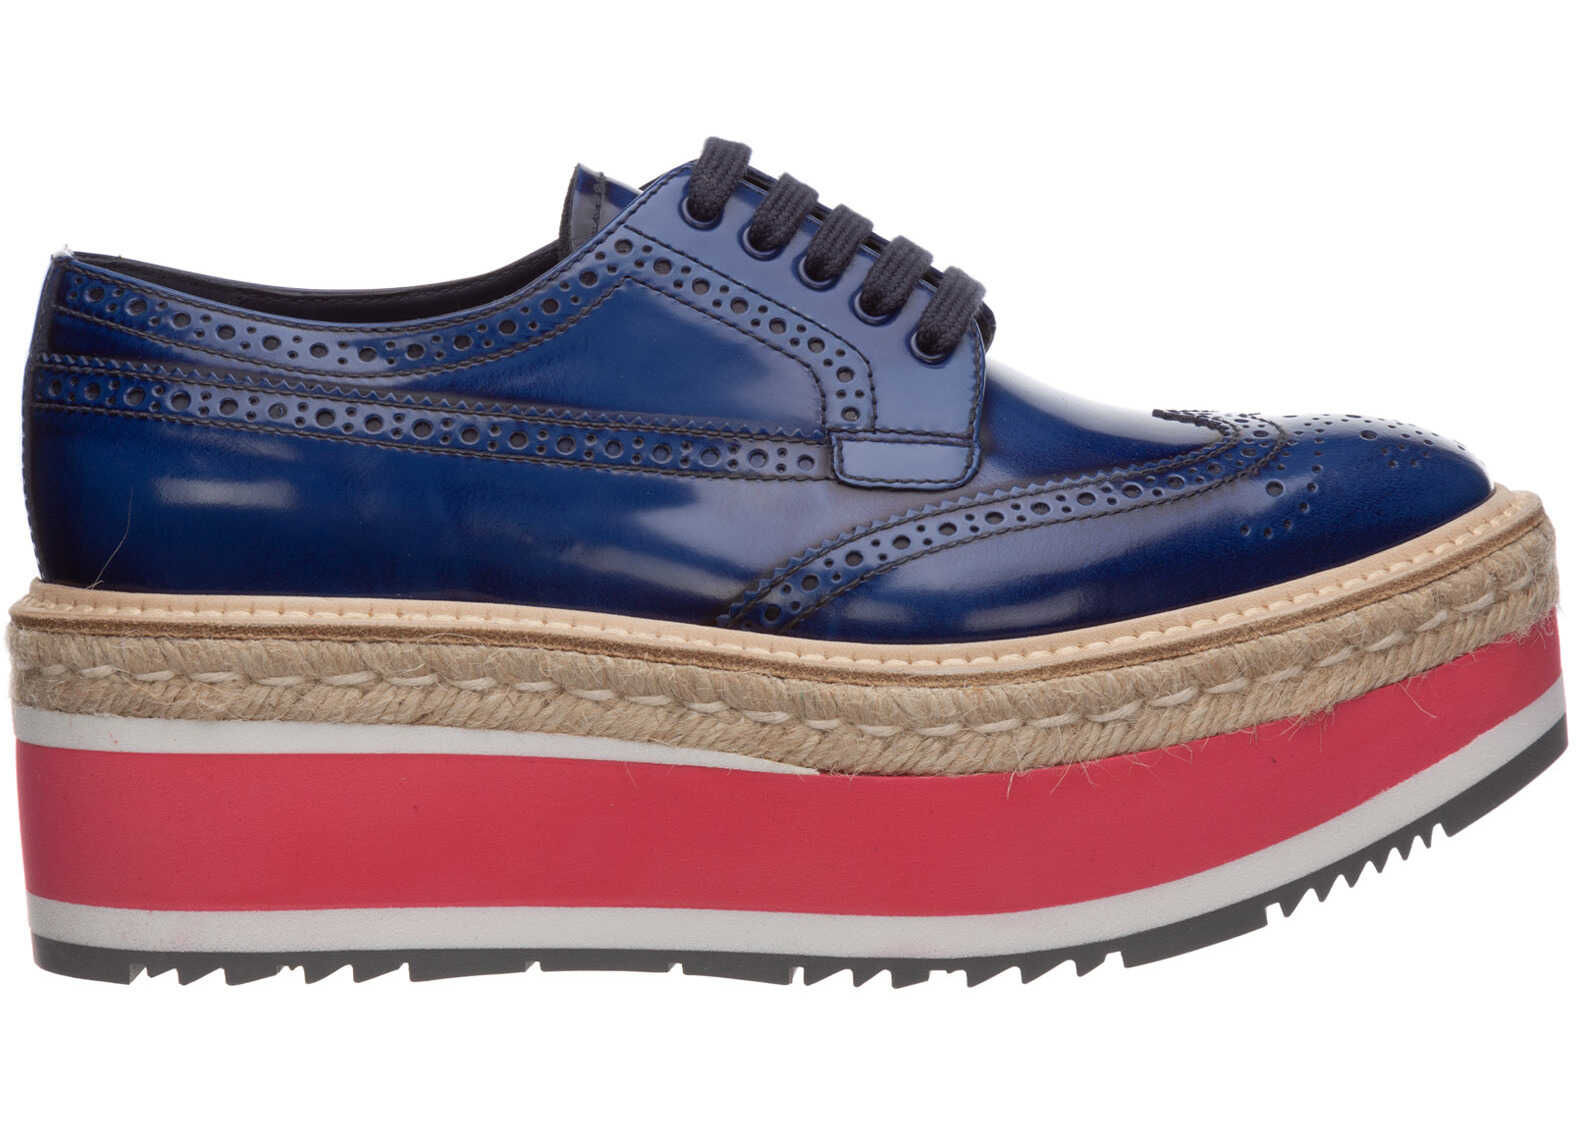 Prada Shoes Derby Blue